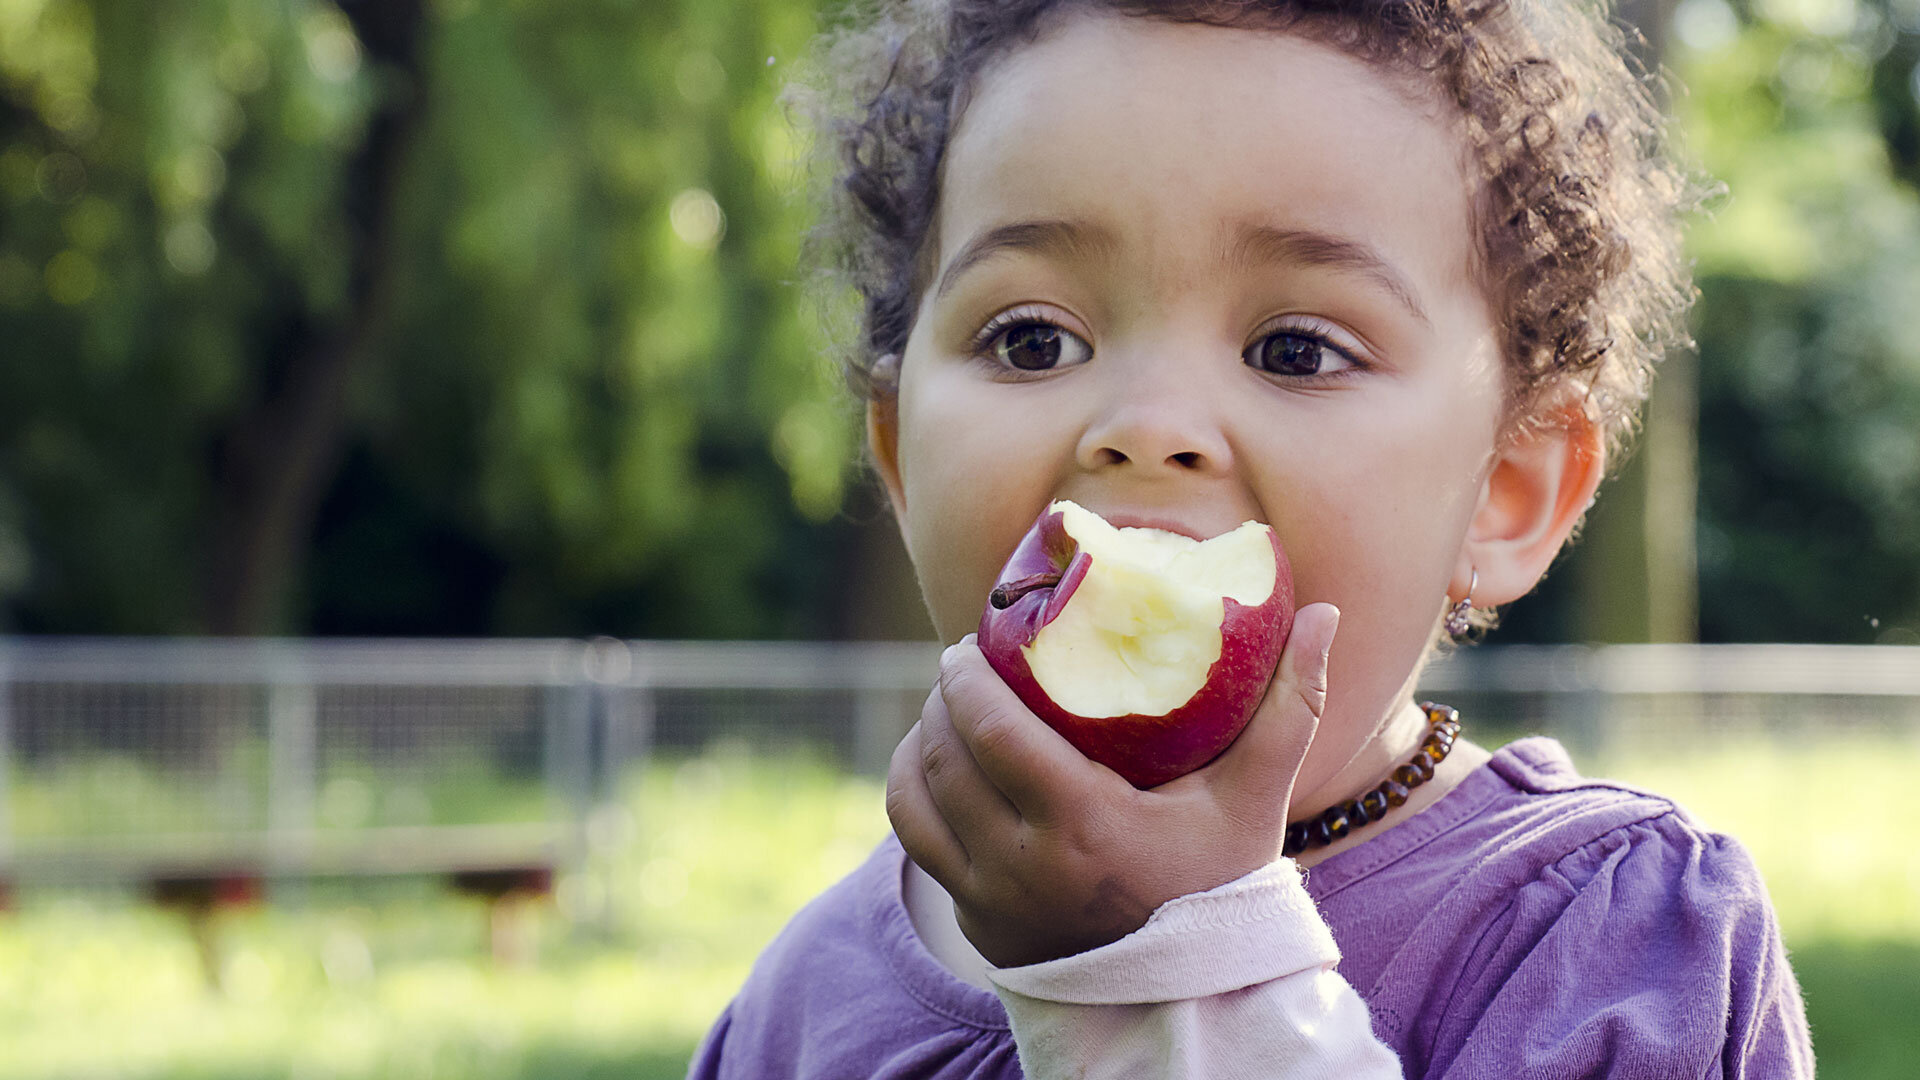 Child eating apple (Credit: Pavla Zakova)